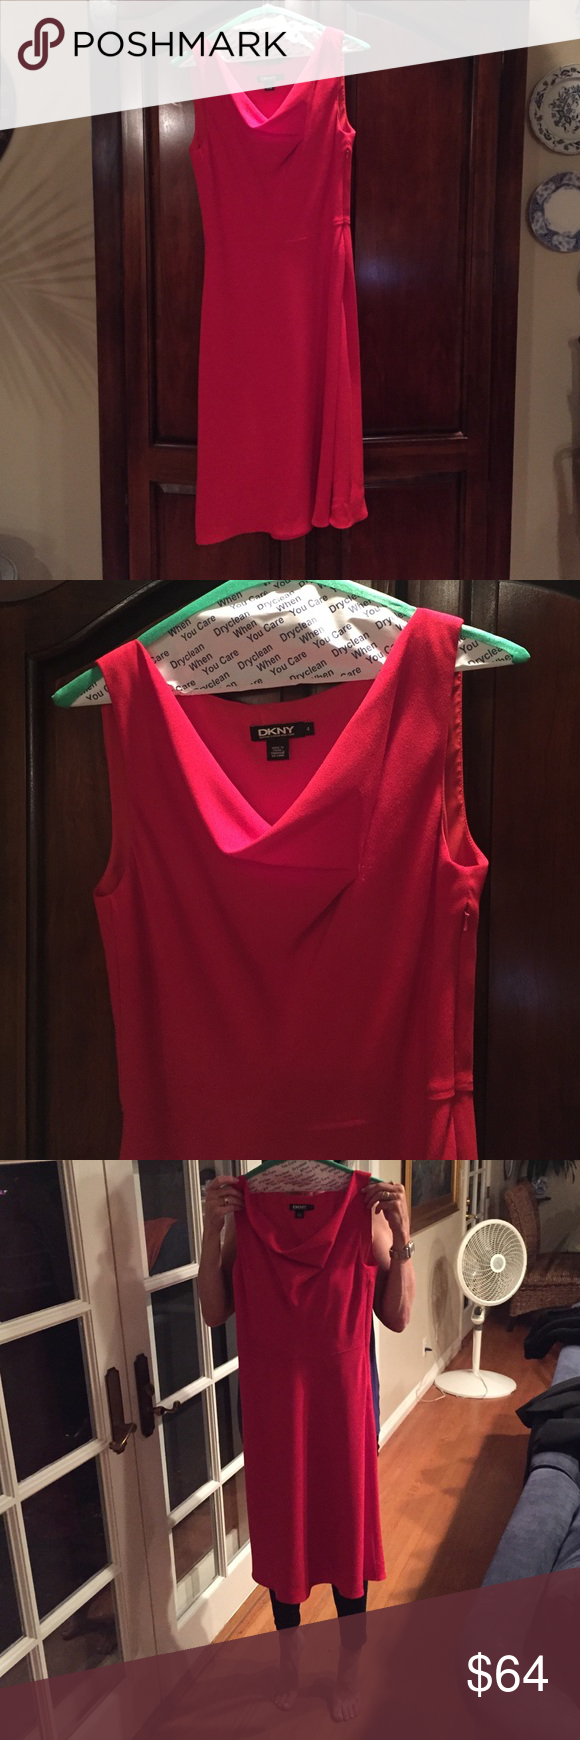 Dkny Holiday Dress Donna Karen New York Size Y Yet Cly Red Perfect For Any Figure Wear To The Office Or Over Holidays